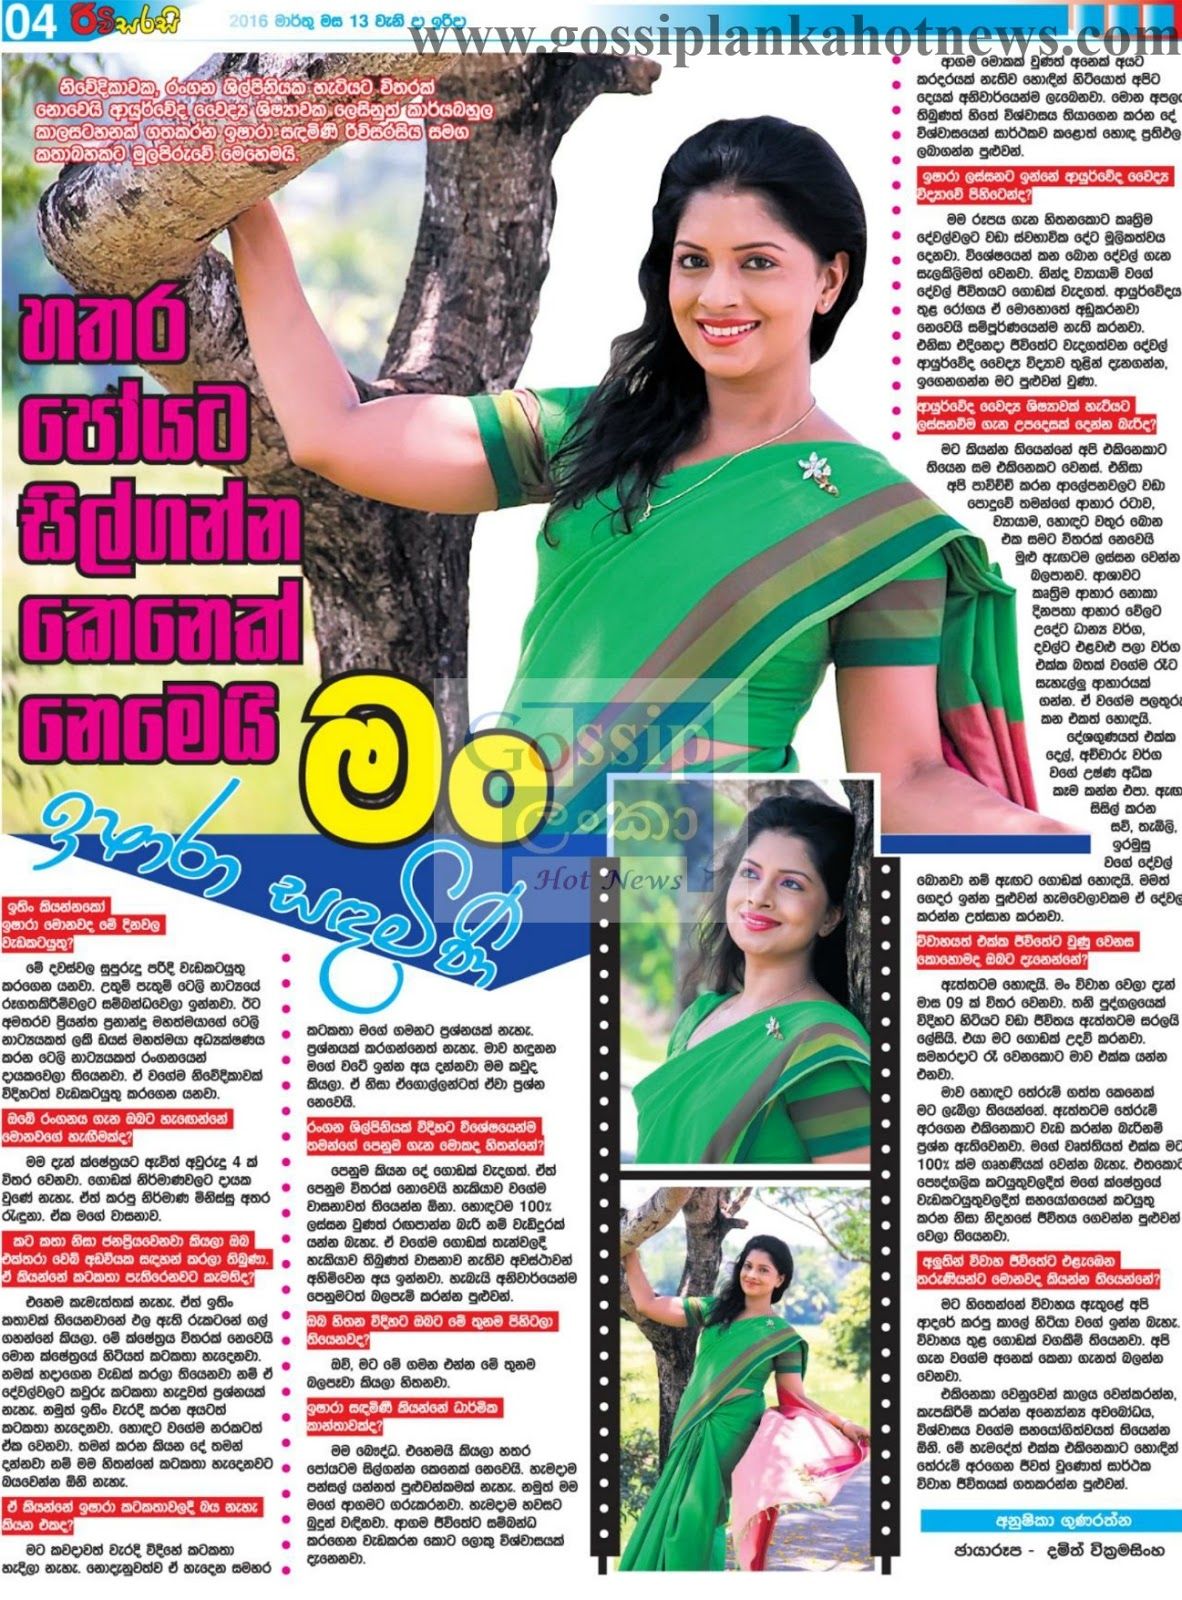 Ishara Sandamini Abeywickrama participated in Derana Miss Sri Lanka beauty contest in 2008 and she was able to selected for the last 5 finallists.